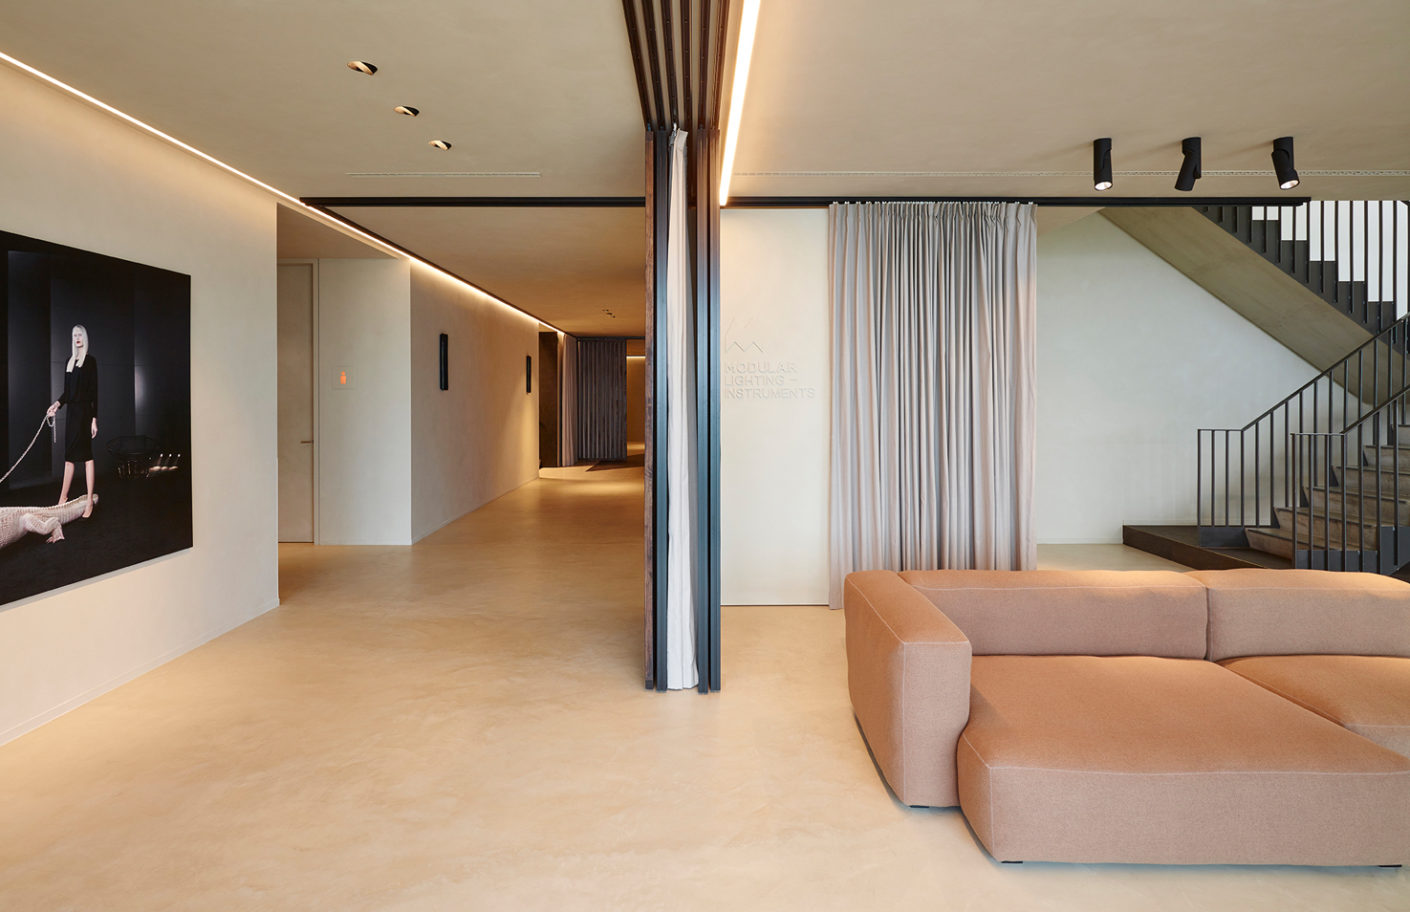 Wooden room dividers and floor-length drapes are used to create spaces in which employees can enjoy their privacy.